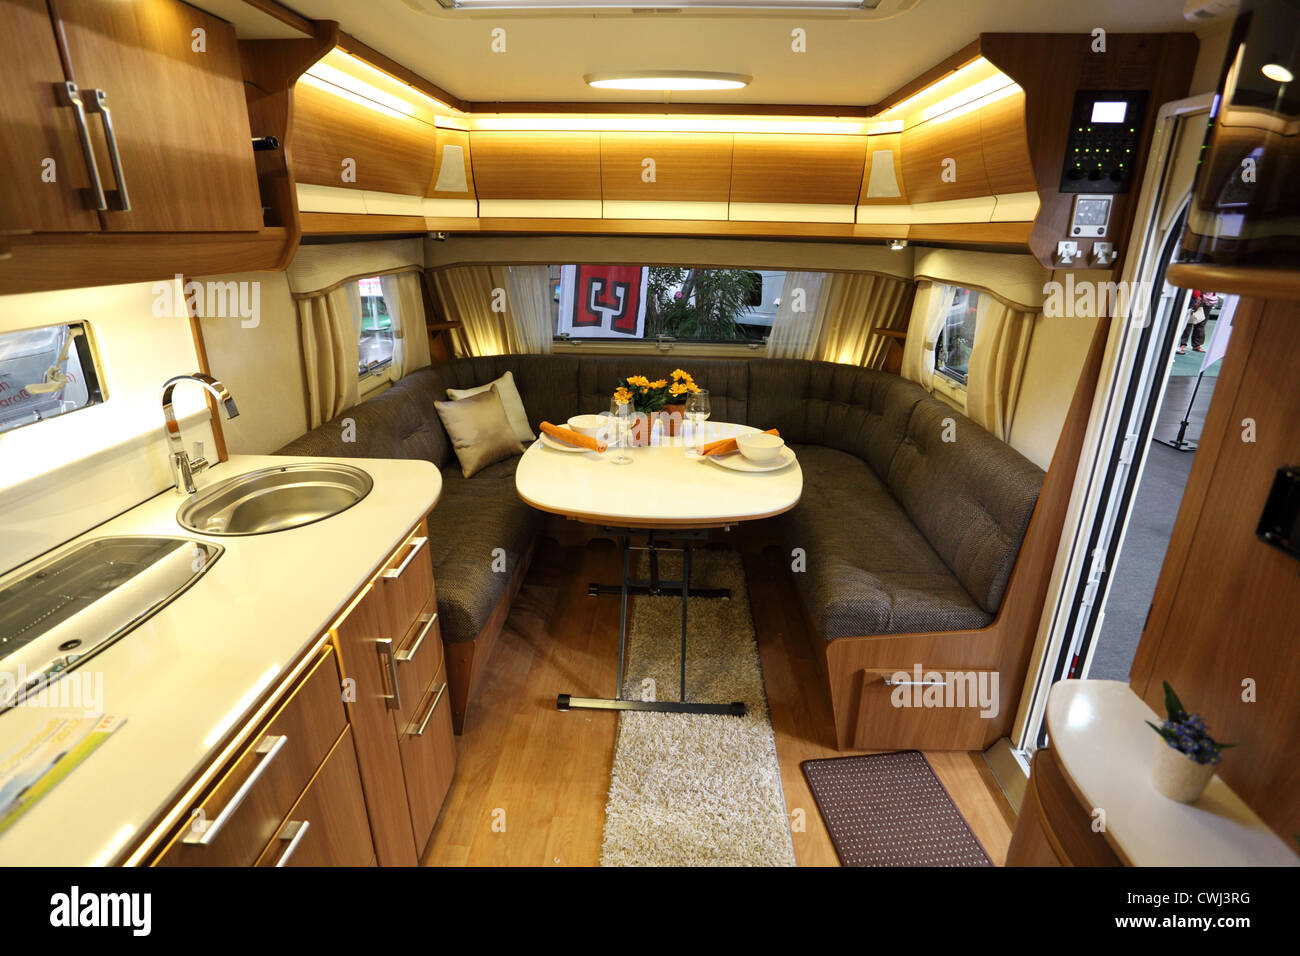 Interior Of A Modern Camper Van At The Caravan Salon Exhibition 2012 On August 27 In Dusseldorf Germany